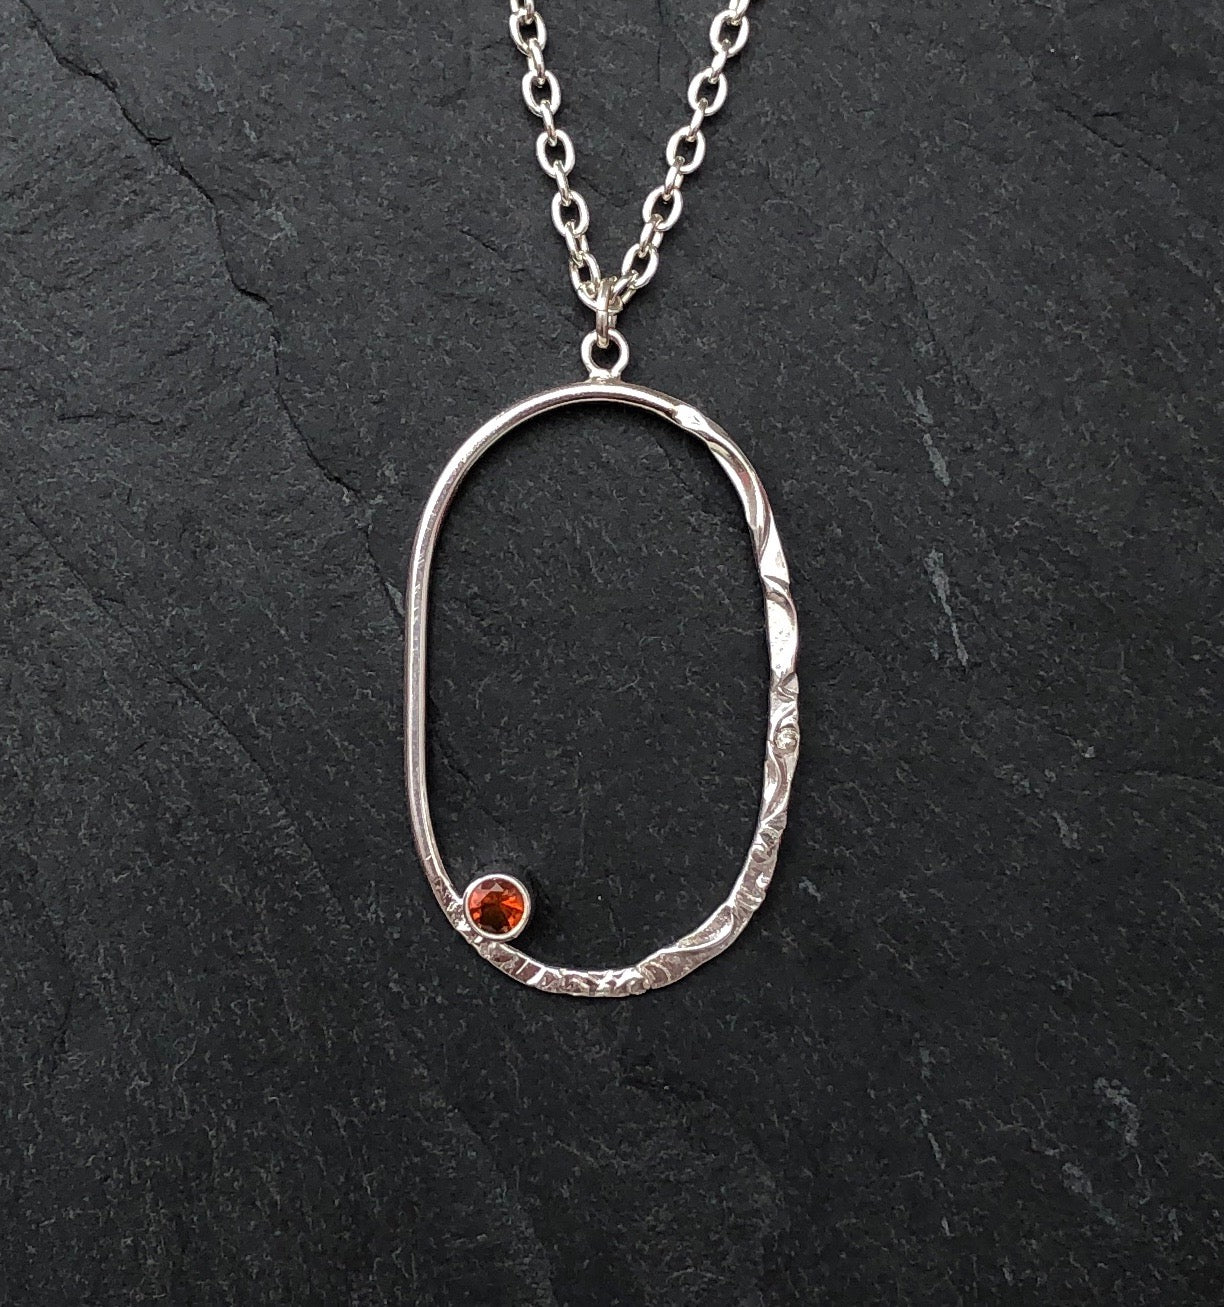 Sterling Oval Pendant with Fire Opal